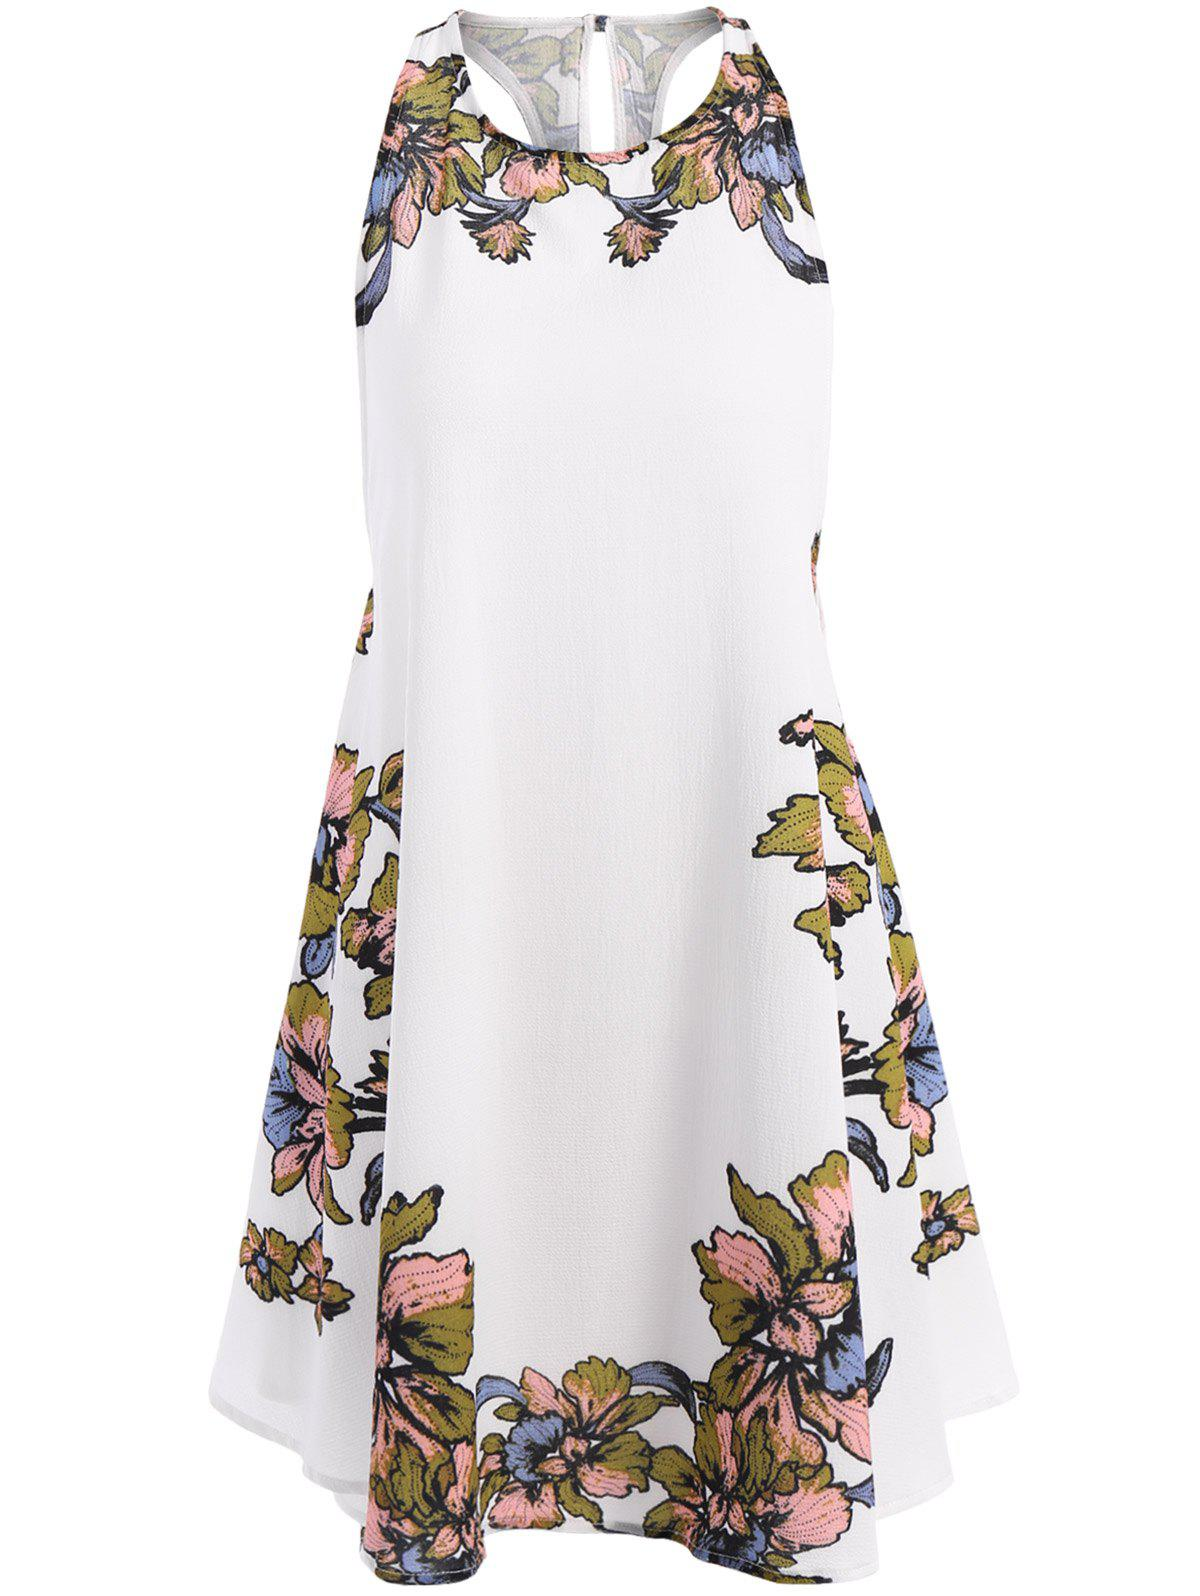 Casual Bohemian Style Women's Scoop Neck Floral Print Lace-Up Asymmetrical Dress - WHITE M